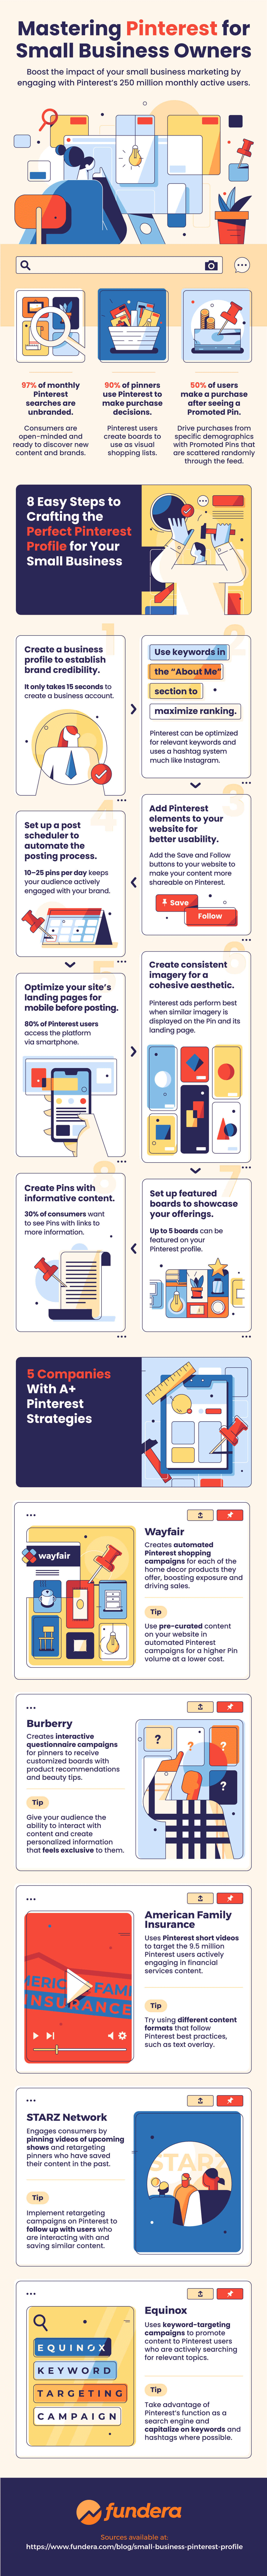 how to leverage Pinterest for small business infographic